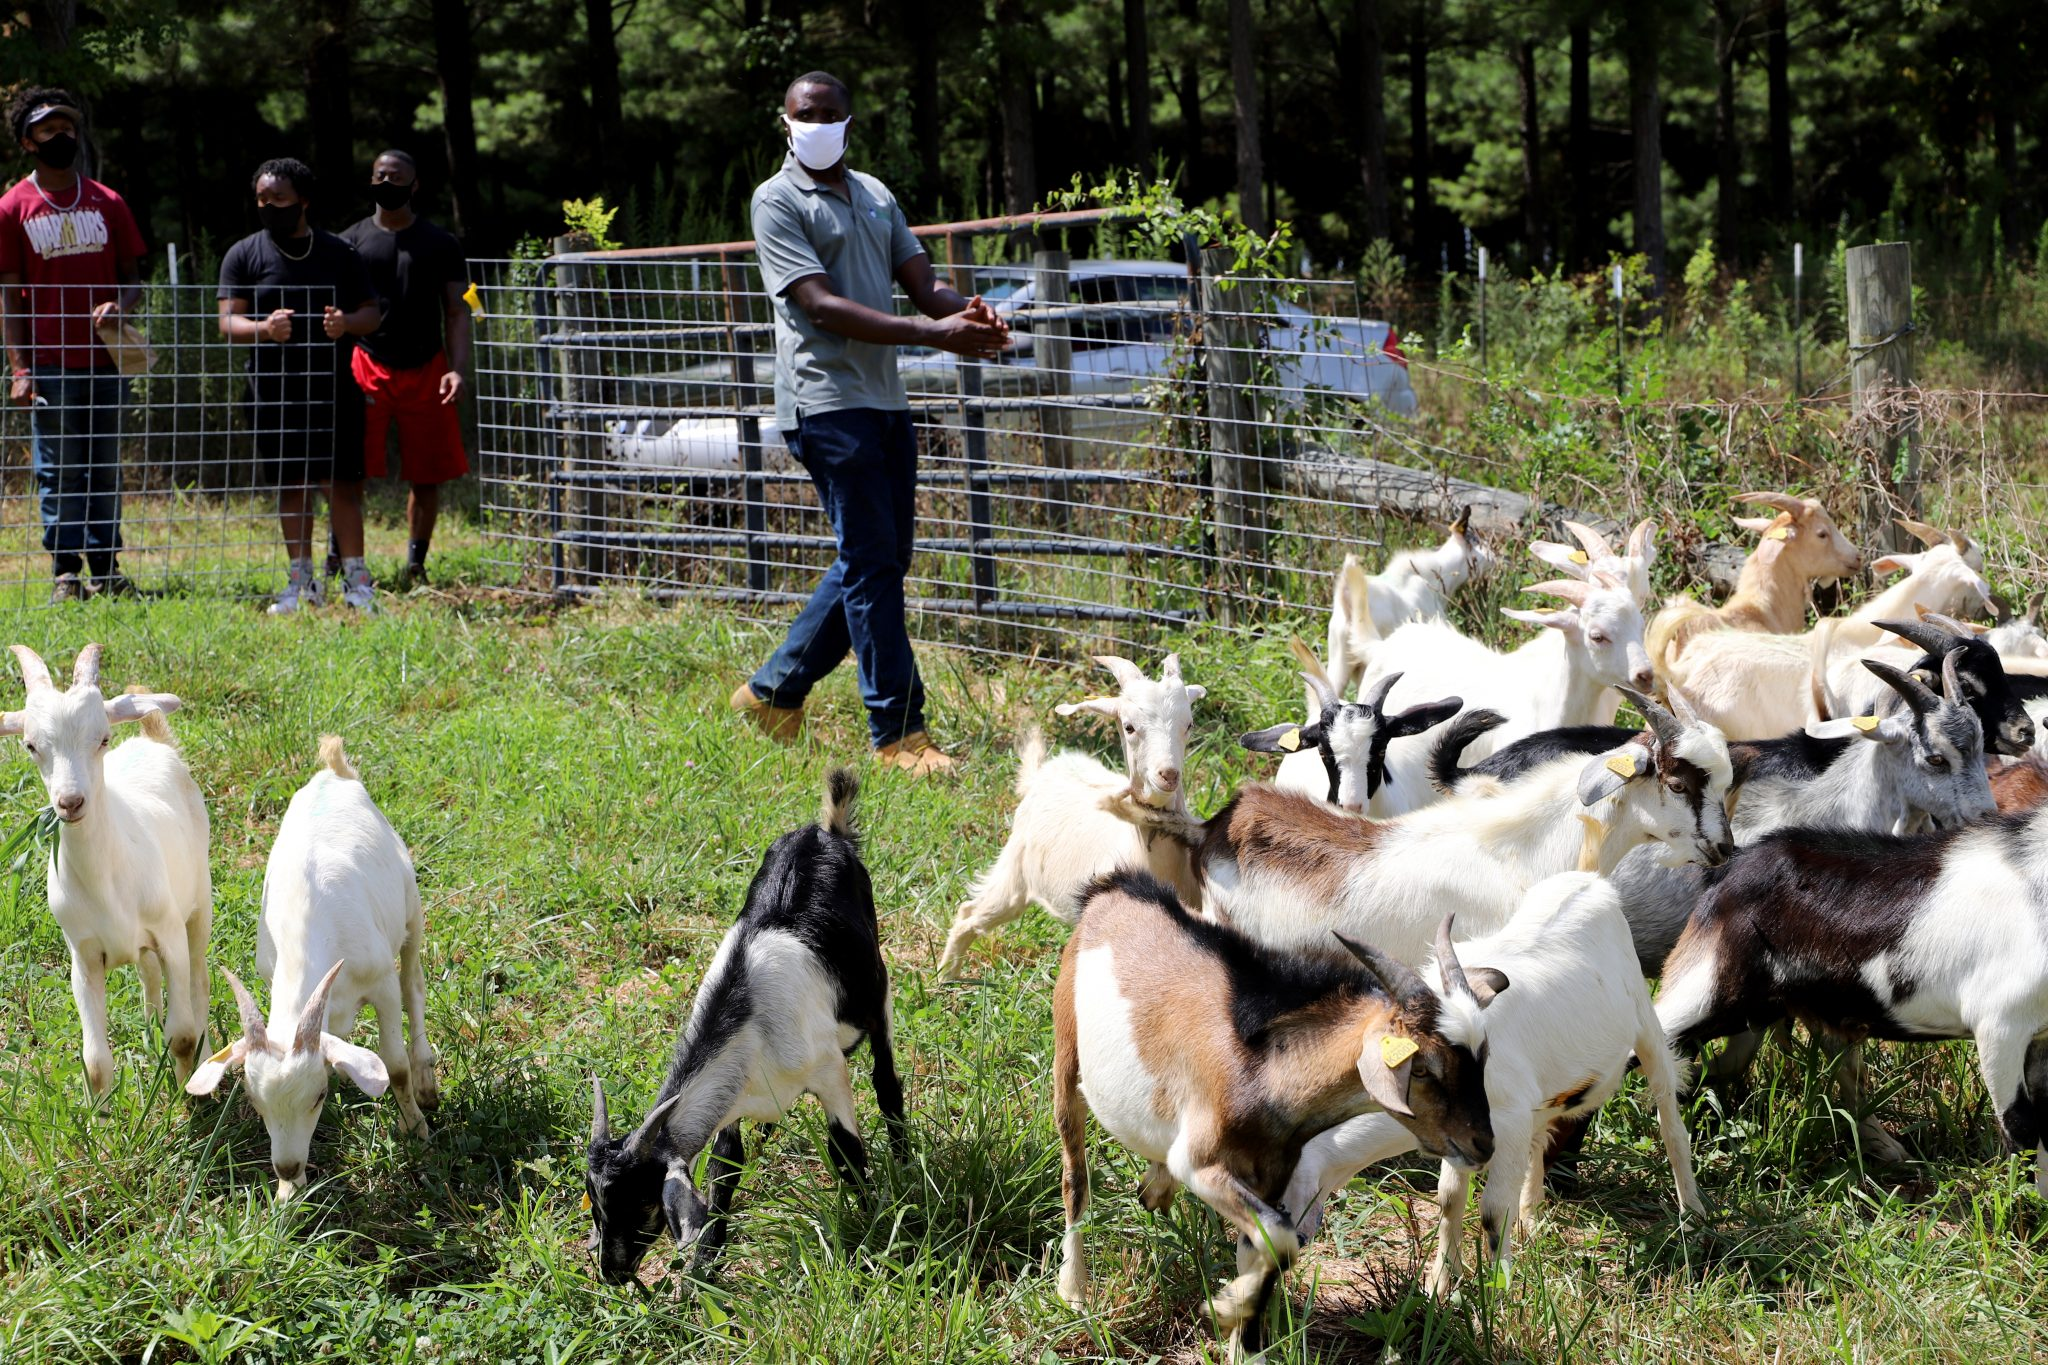 Animal Sciences and Forages Specialist Dr. Valens Niyigena, AAMU students with goats at Winfred Thomas Agricultural Research Station in Hazel Green, AL